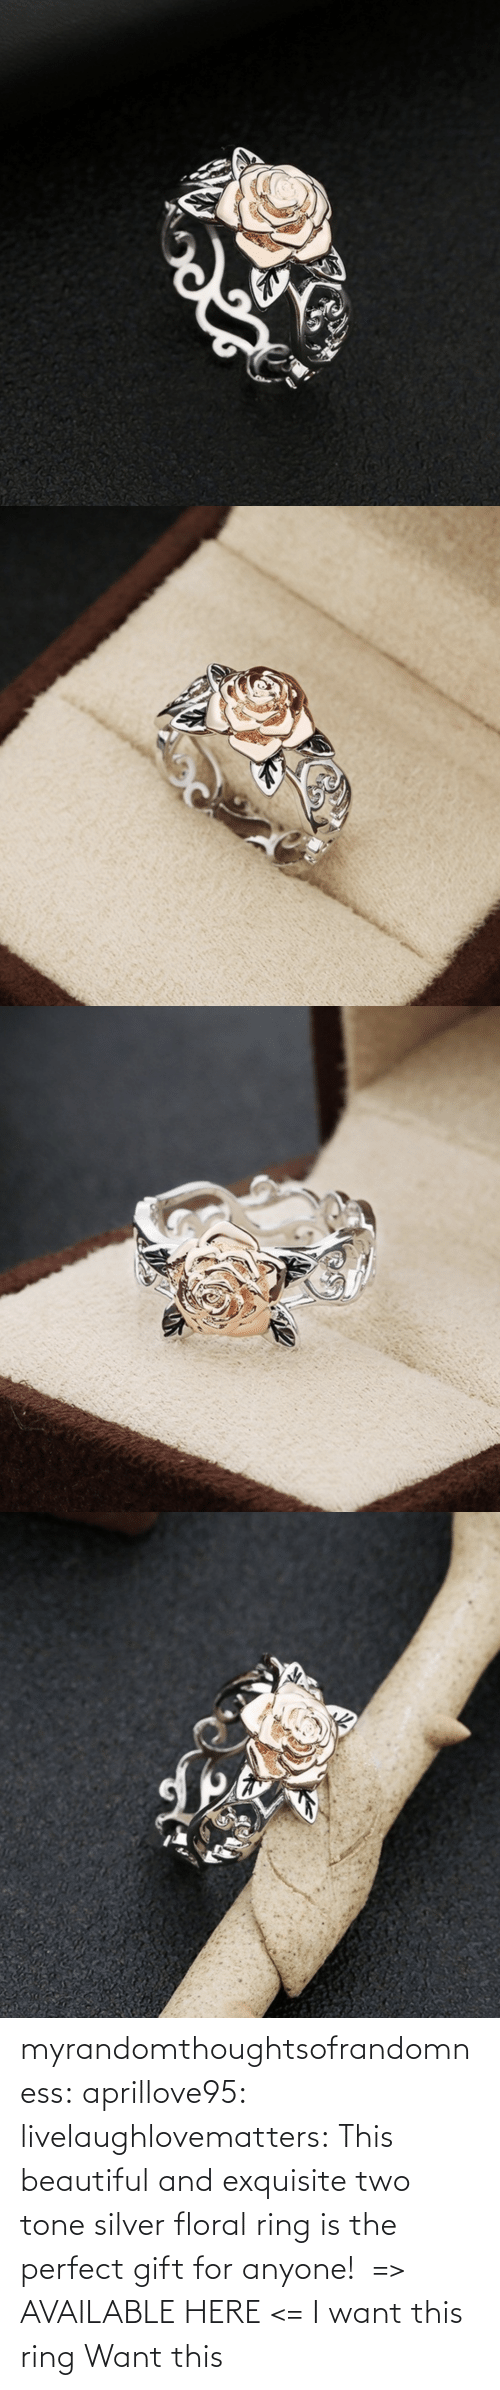 Beautiful, Tumblr, and Blog: myrandomthoughtsofrandomness:  aprillove95: livelaughlovematters:  This beautiful and exquisite two tone silver floral ring is the perfect gift for anyone!  => AVAILABLE HERE <=    I want this ring     Want this